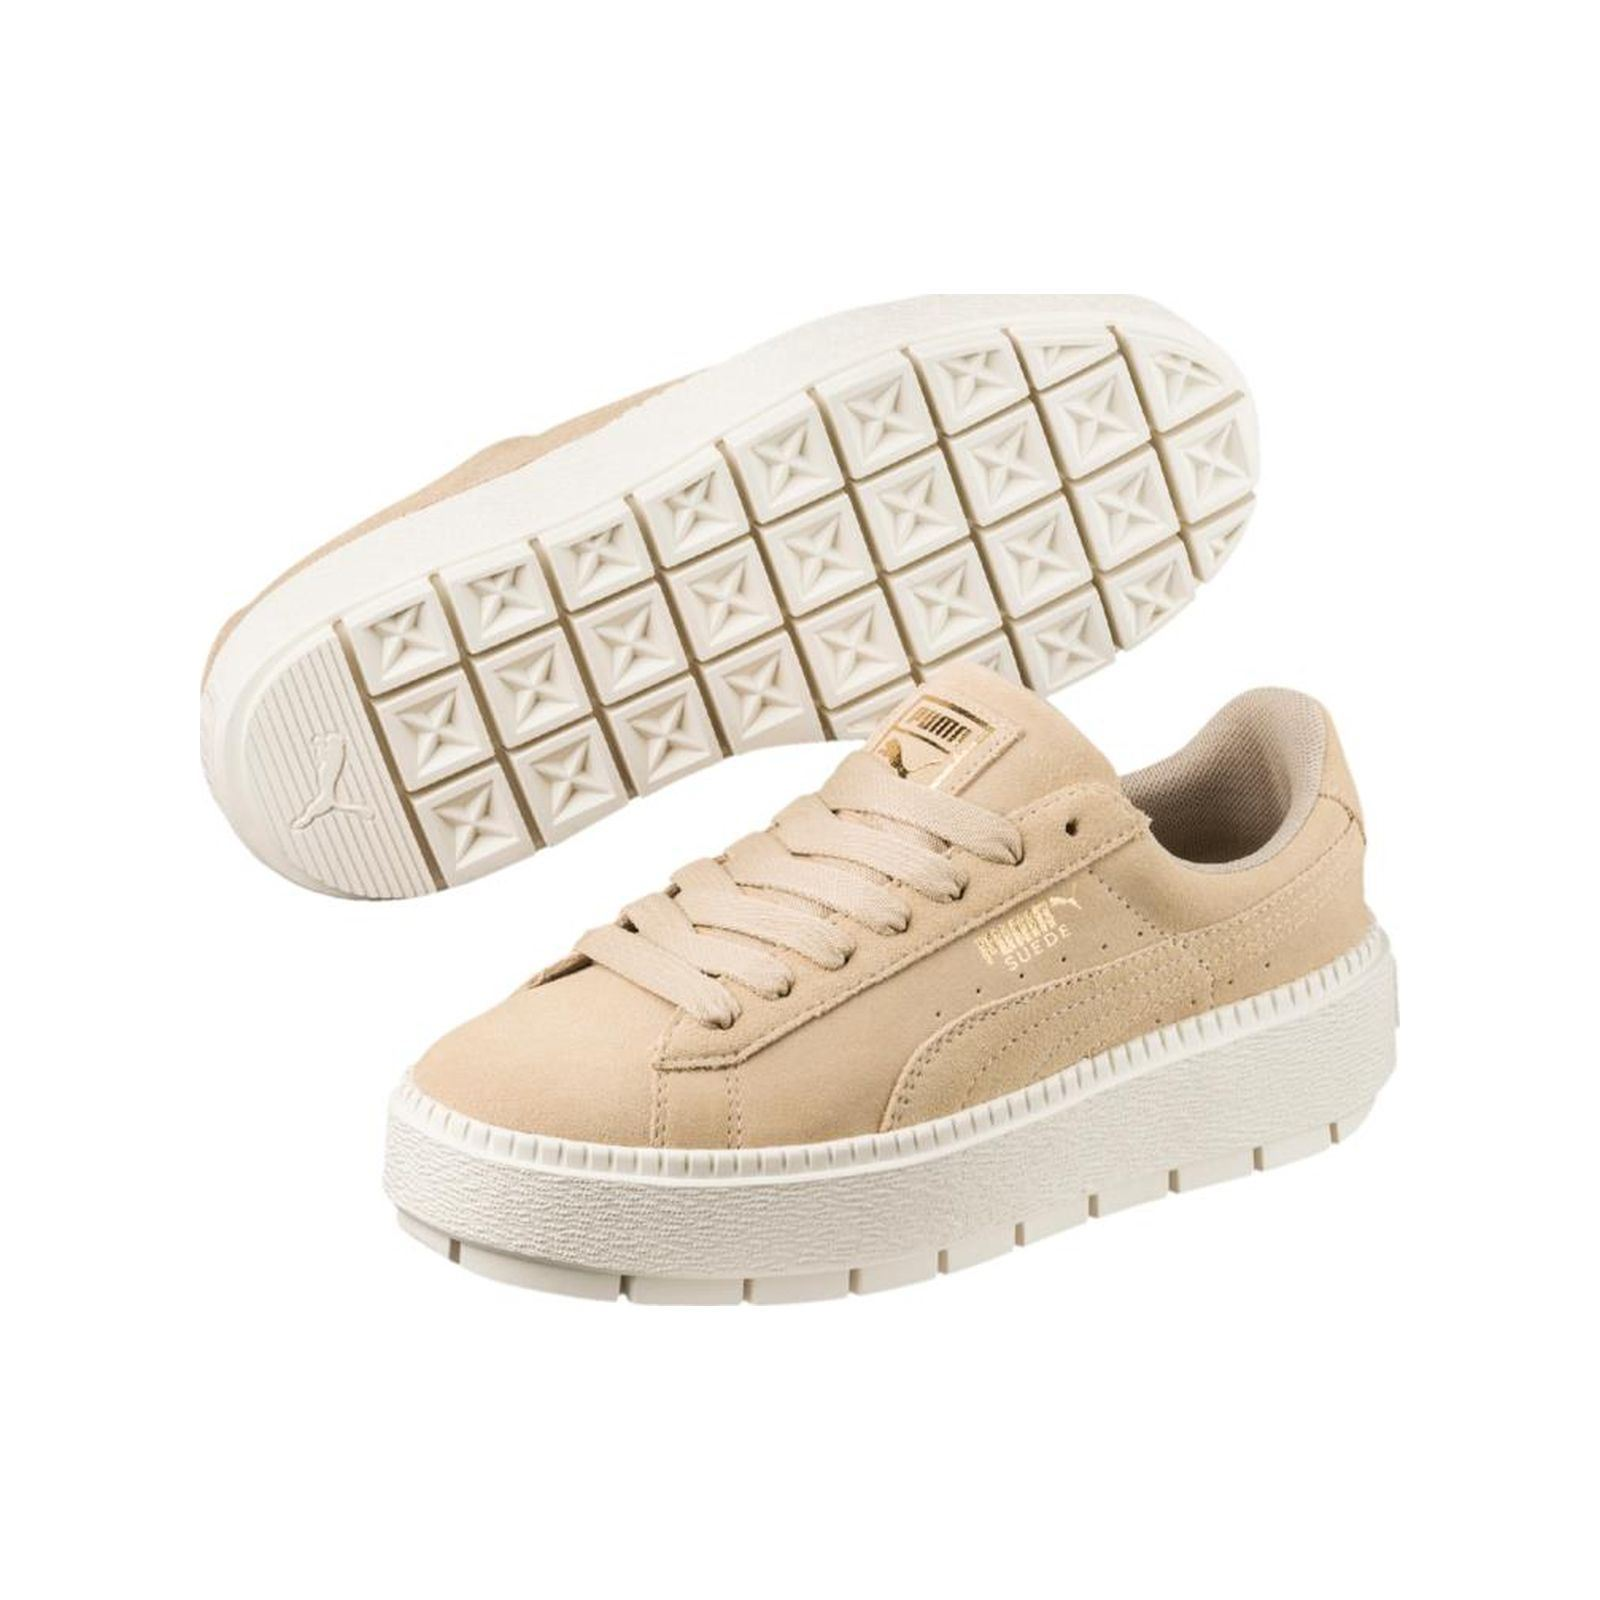 Baskets en cuir Suede Plateform Trace Puma Mally Sandales 5830 Sandales compensées Femmes Rose Mally soldes Mally Chaussures 5727 Richelieus Femmes Bleu Mally soldes K3Y2R